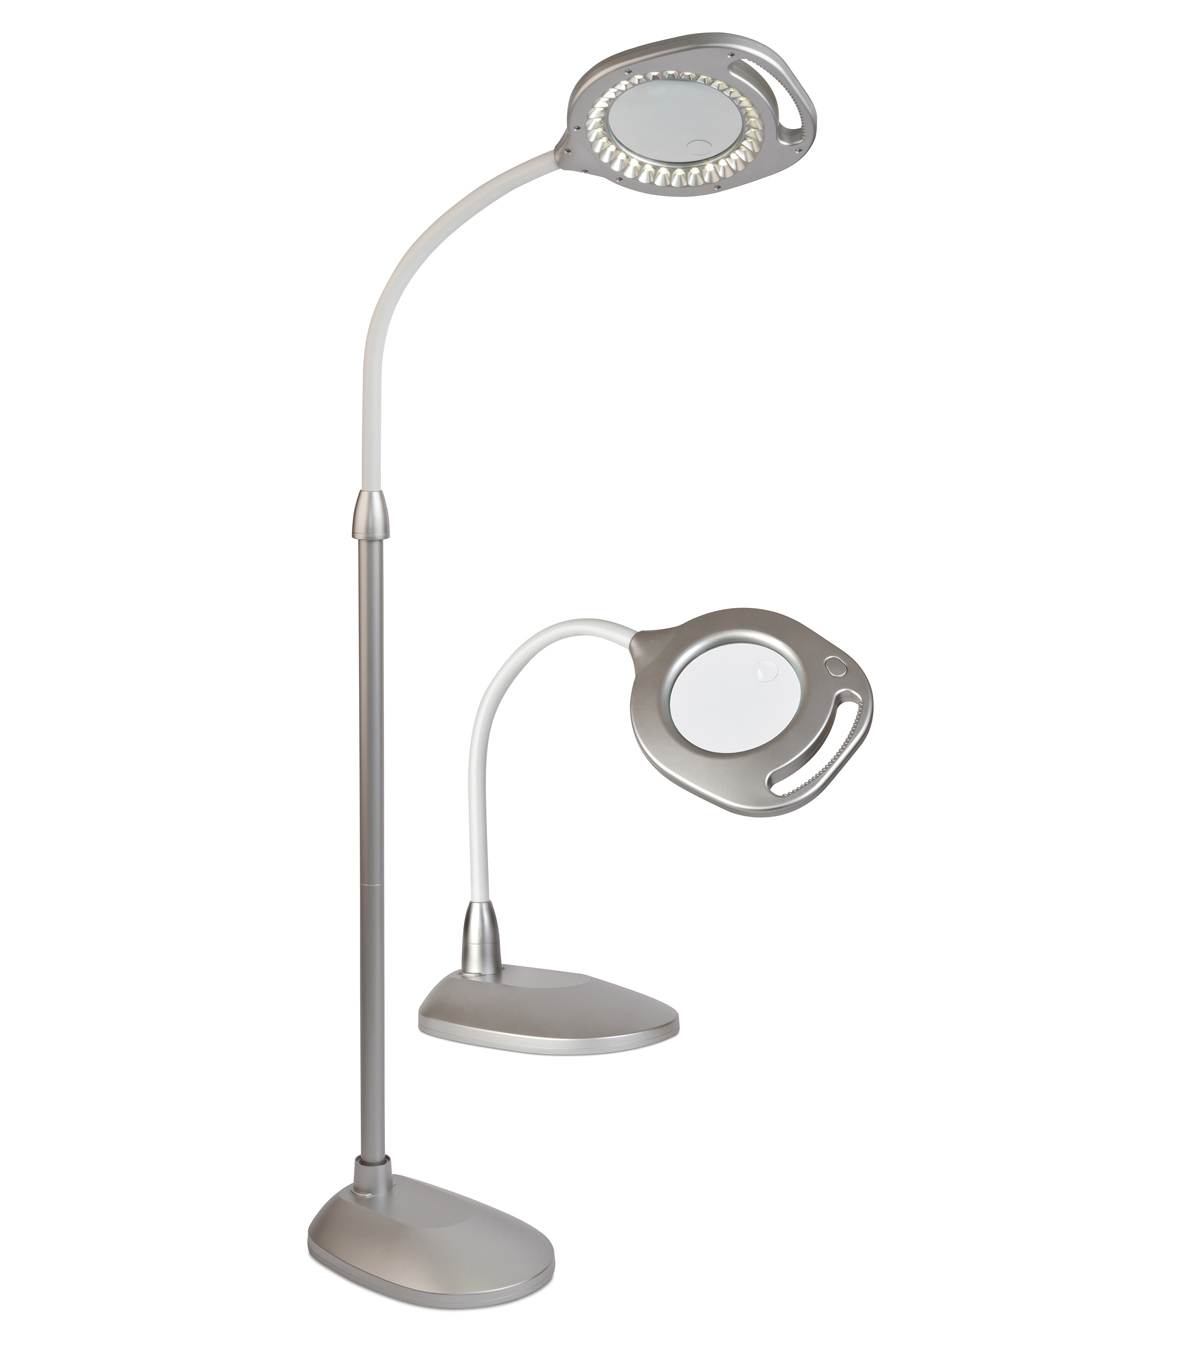 Ott Floor Lamp: OttLite 2-in-1 LED Magnifier Floor And Table Lamp,Lighting